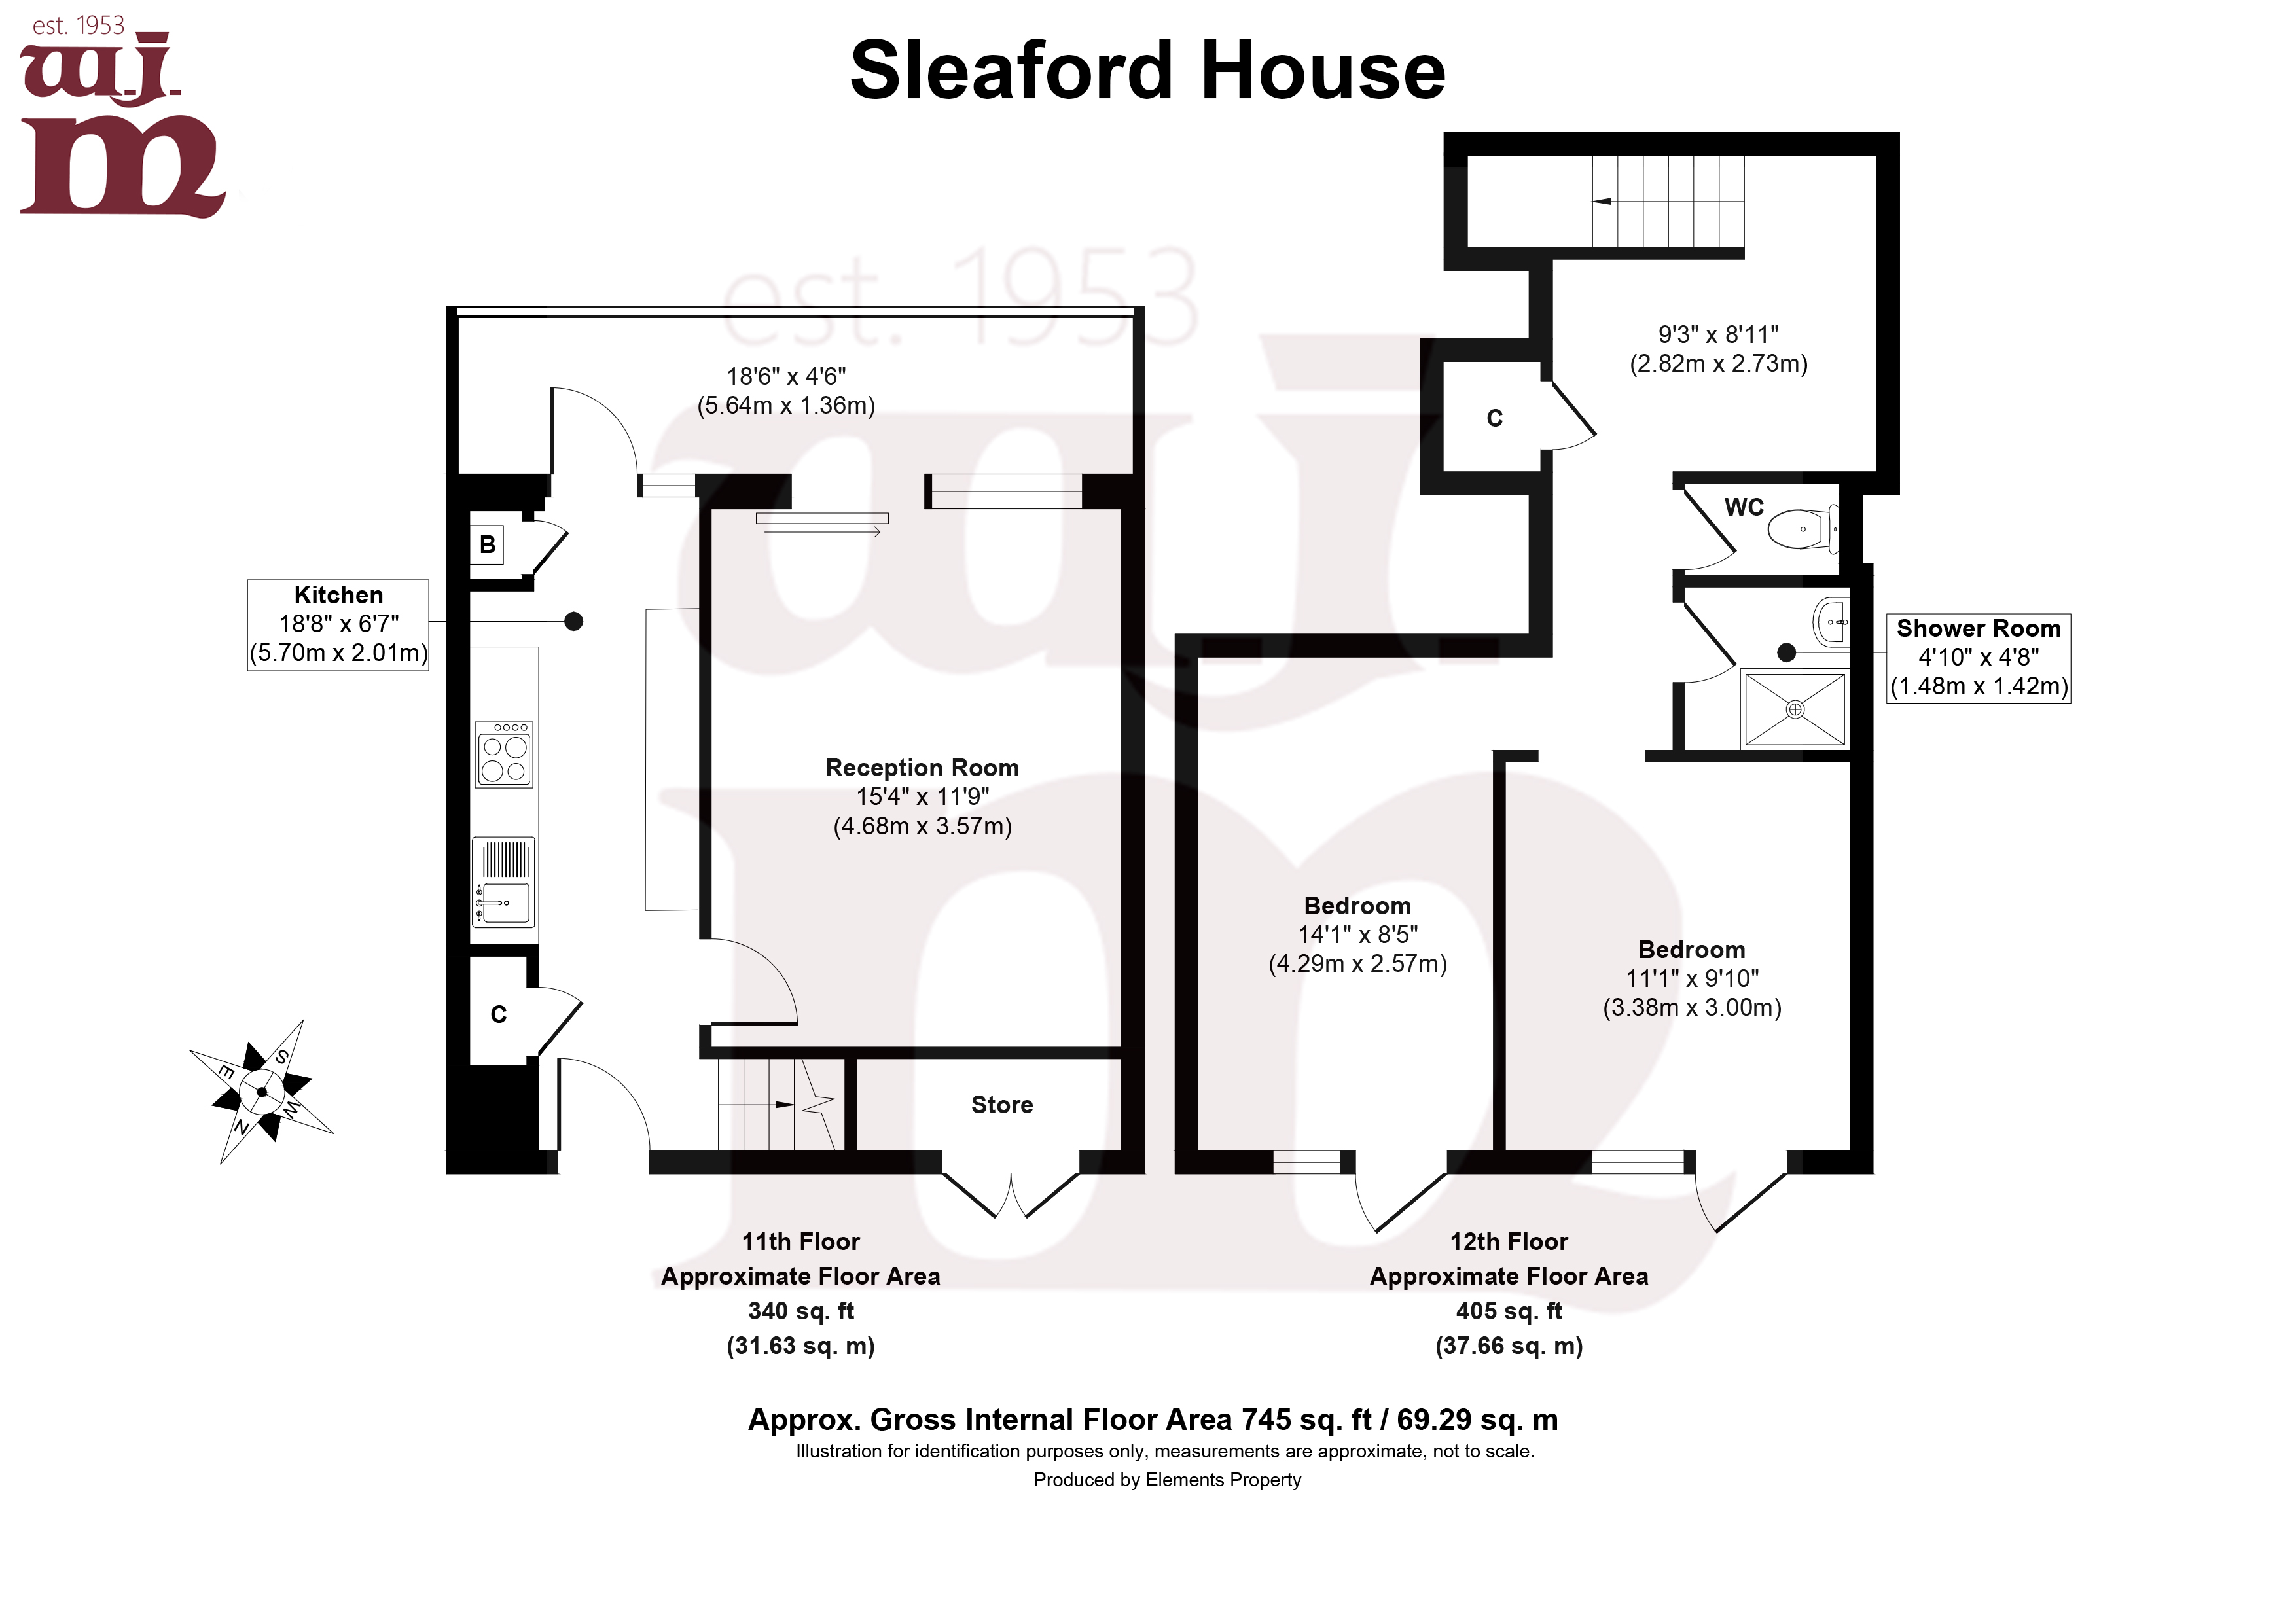 customer_1/branch_1/client_43404/sale_property/61 Sleaford House_1595250608.jpeg